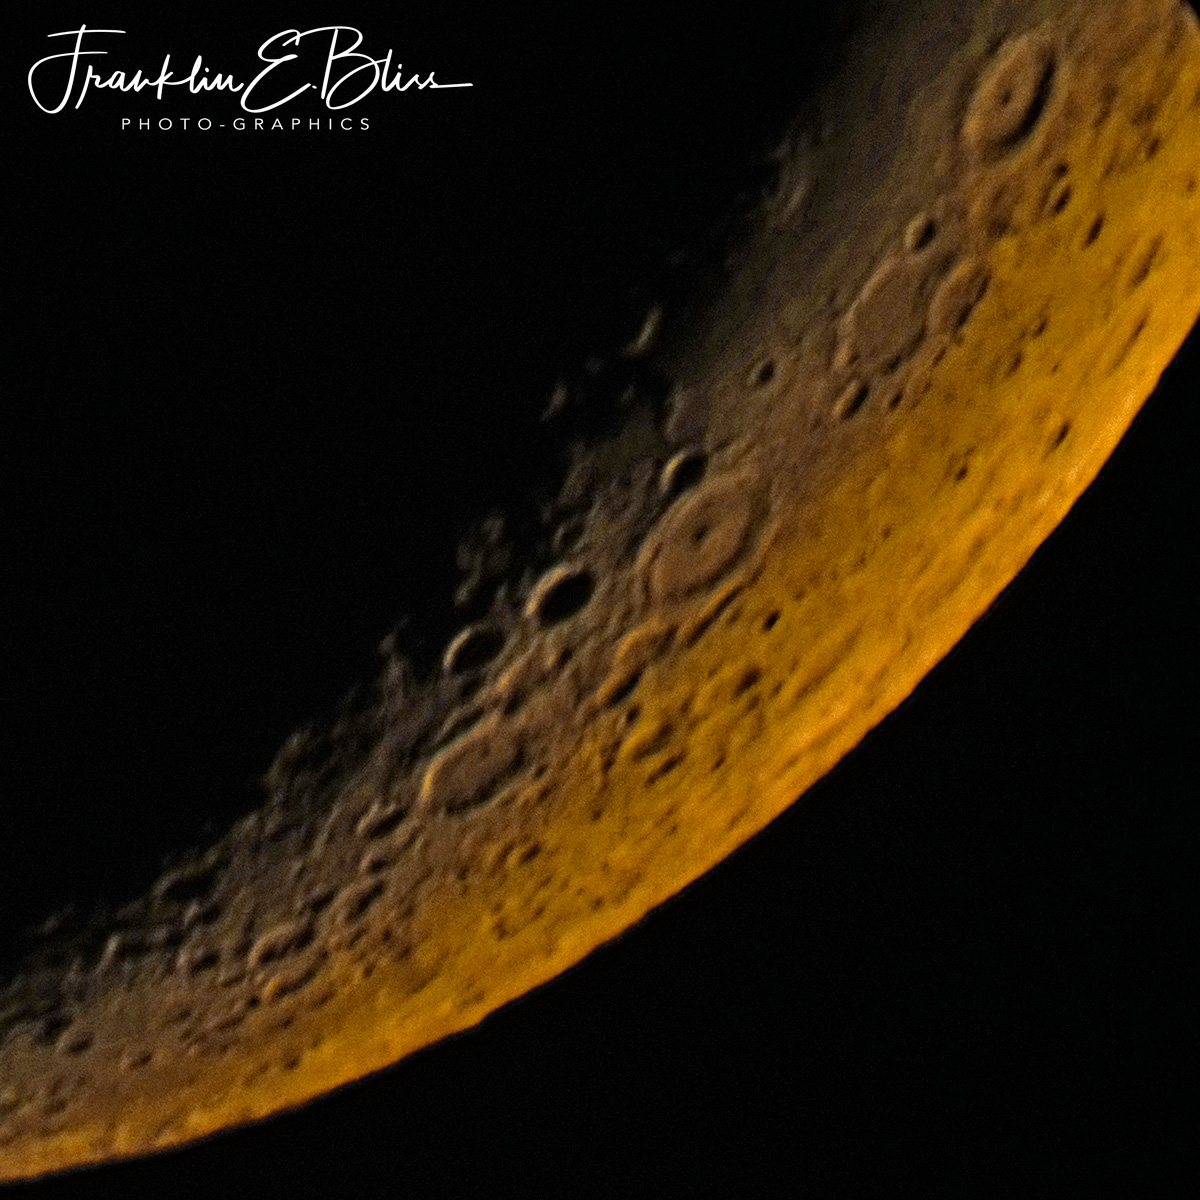 1/4th of a Crescent Moon @ 6400mm